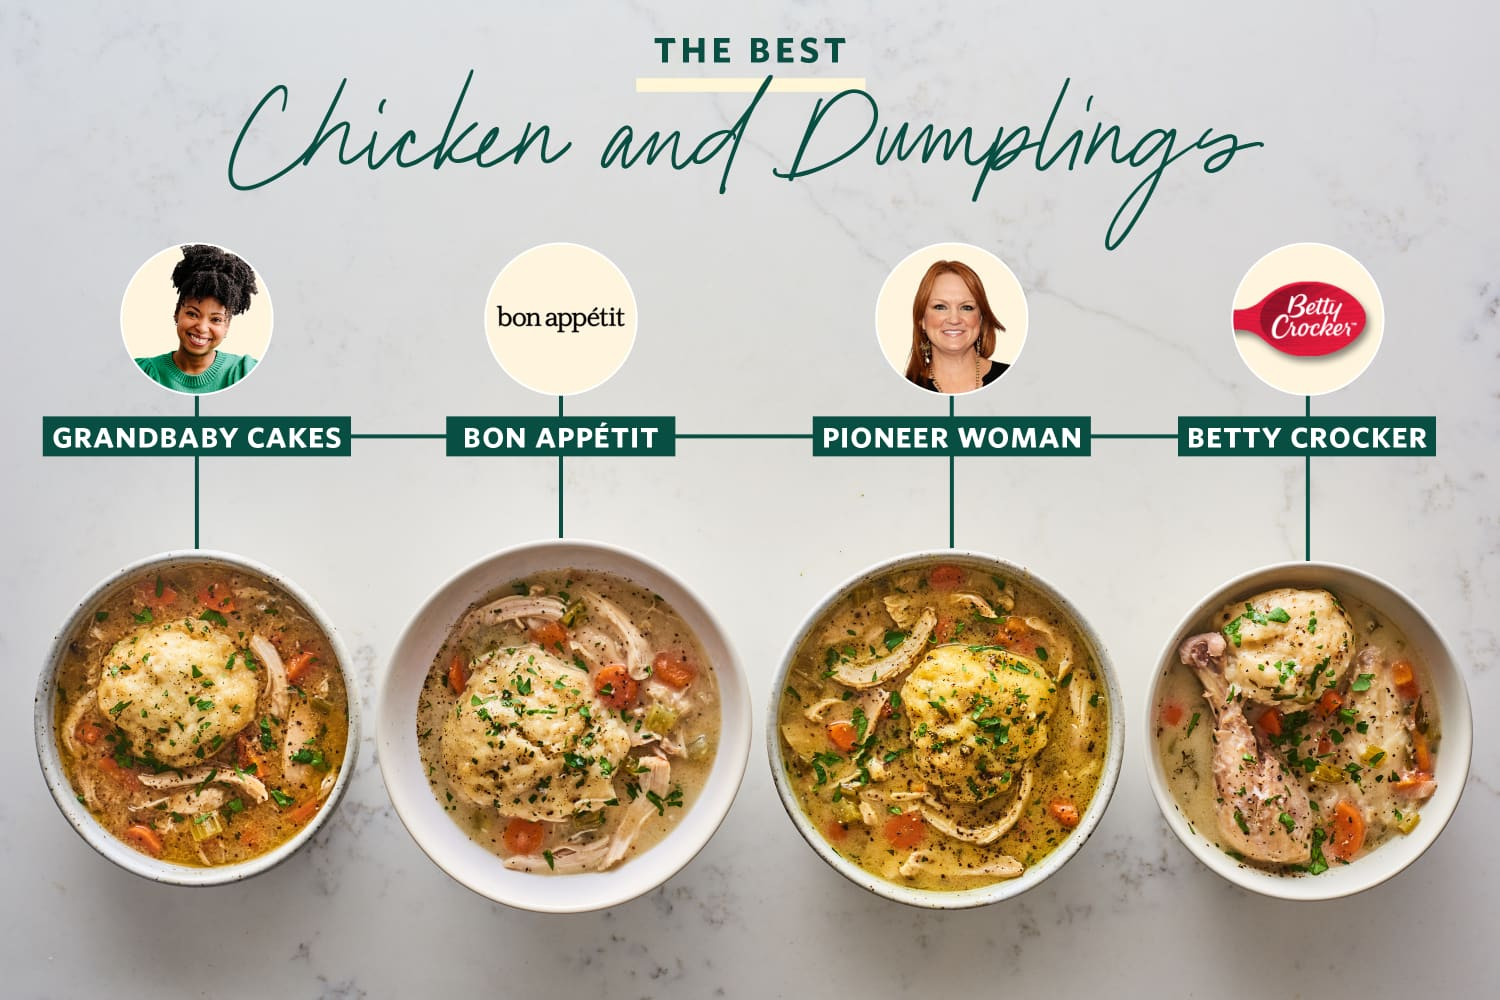 We Tested 4 Famous Chicken and Dumplings Recipes and Found a Clear Winner